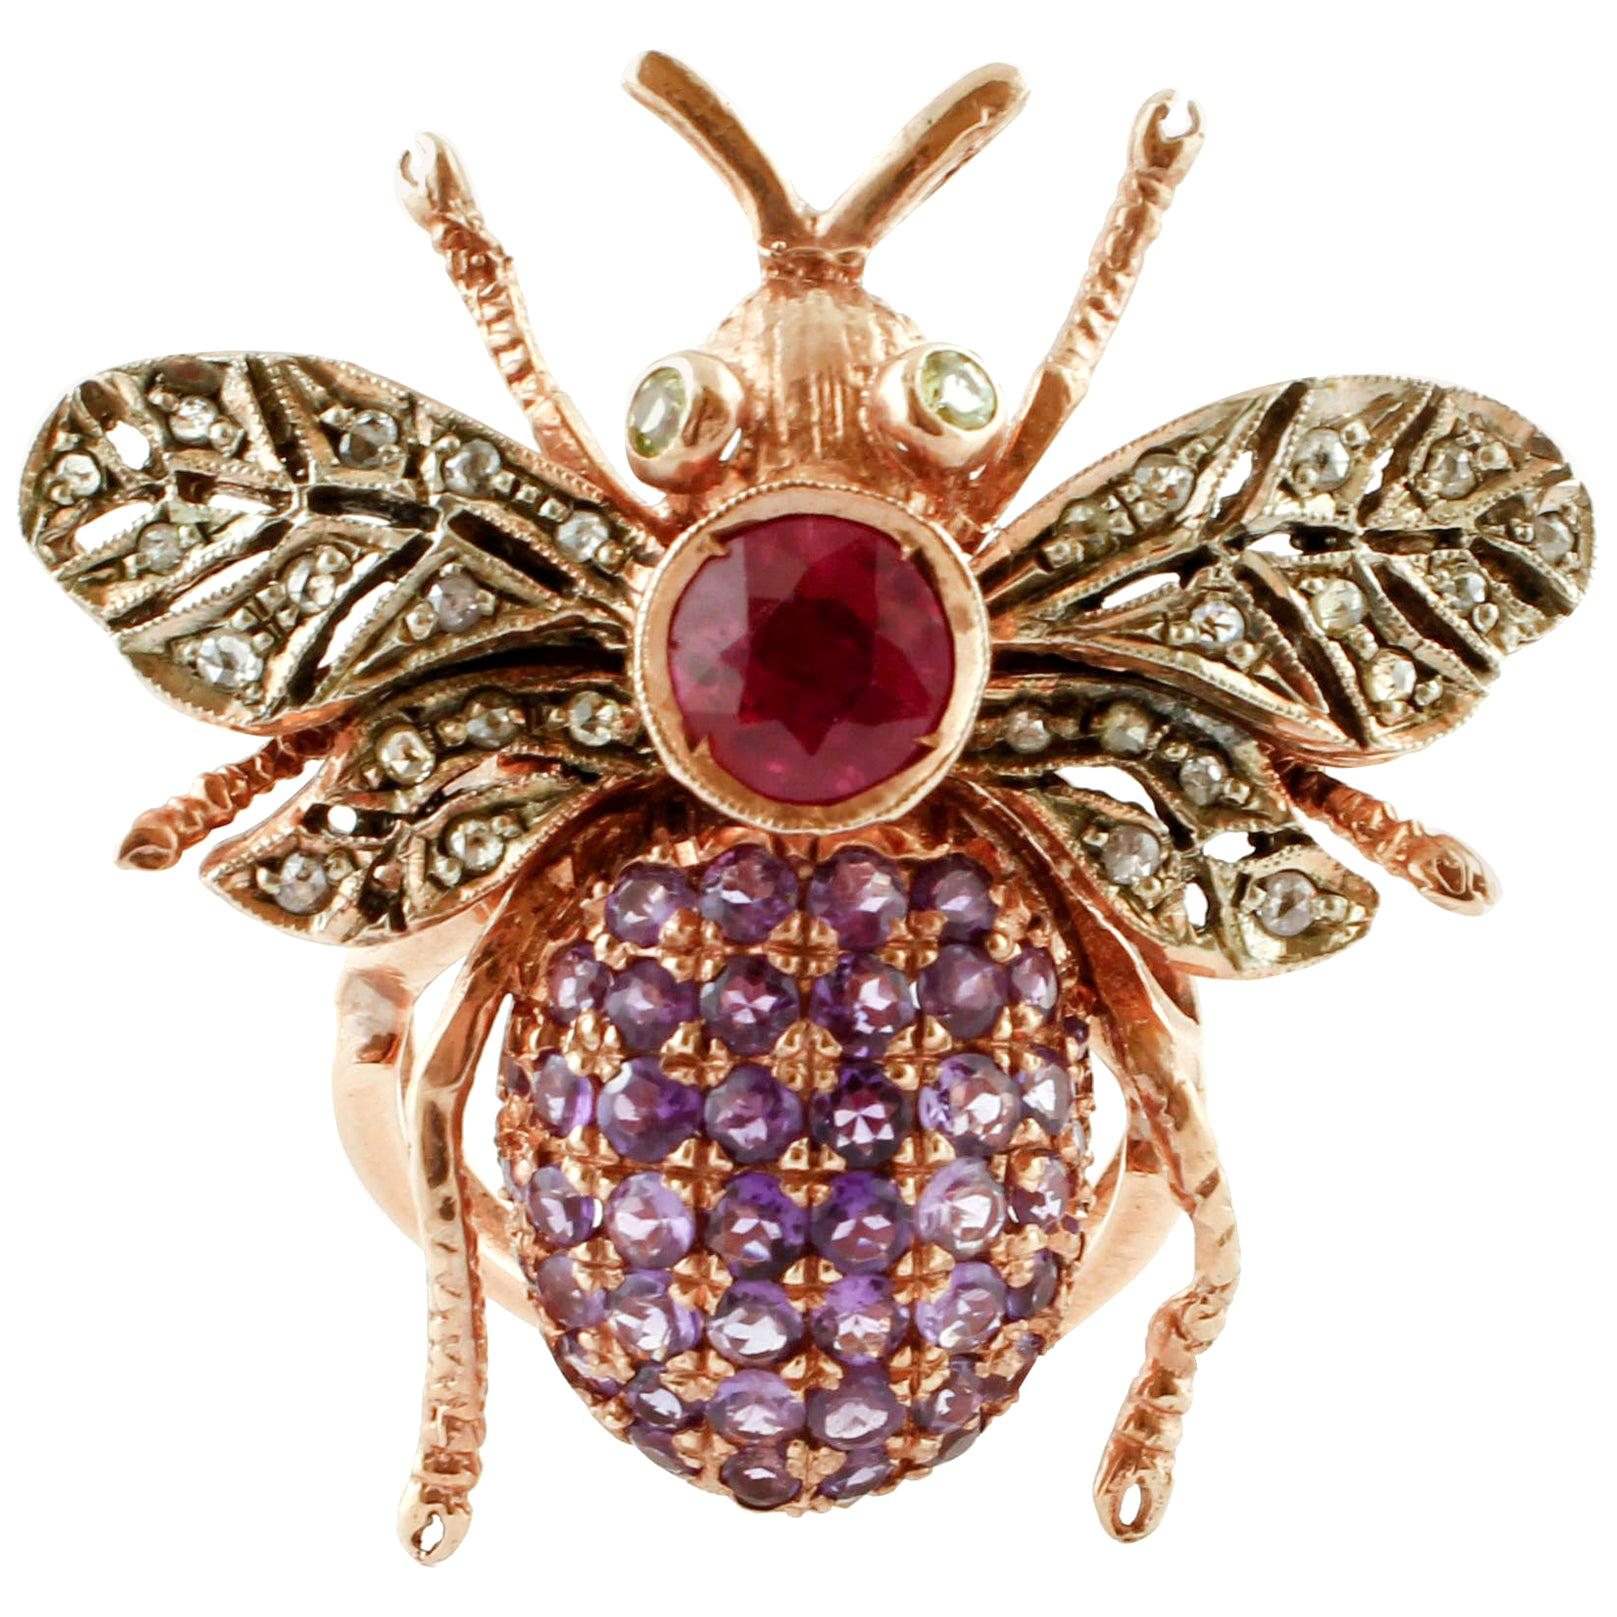 Diamonds, Ruby, Peridots, Amethysts, Rose Gold and Silver Fly Shape Retrò Ring